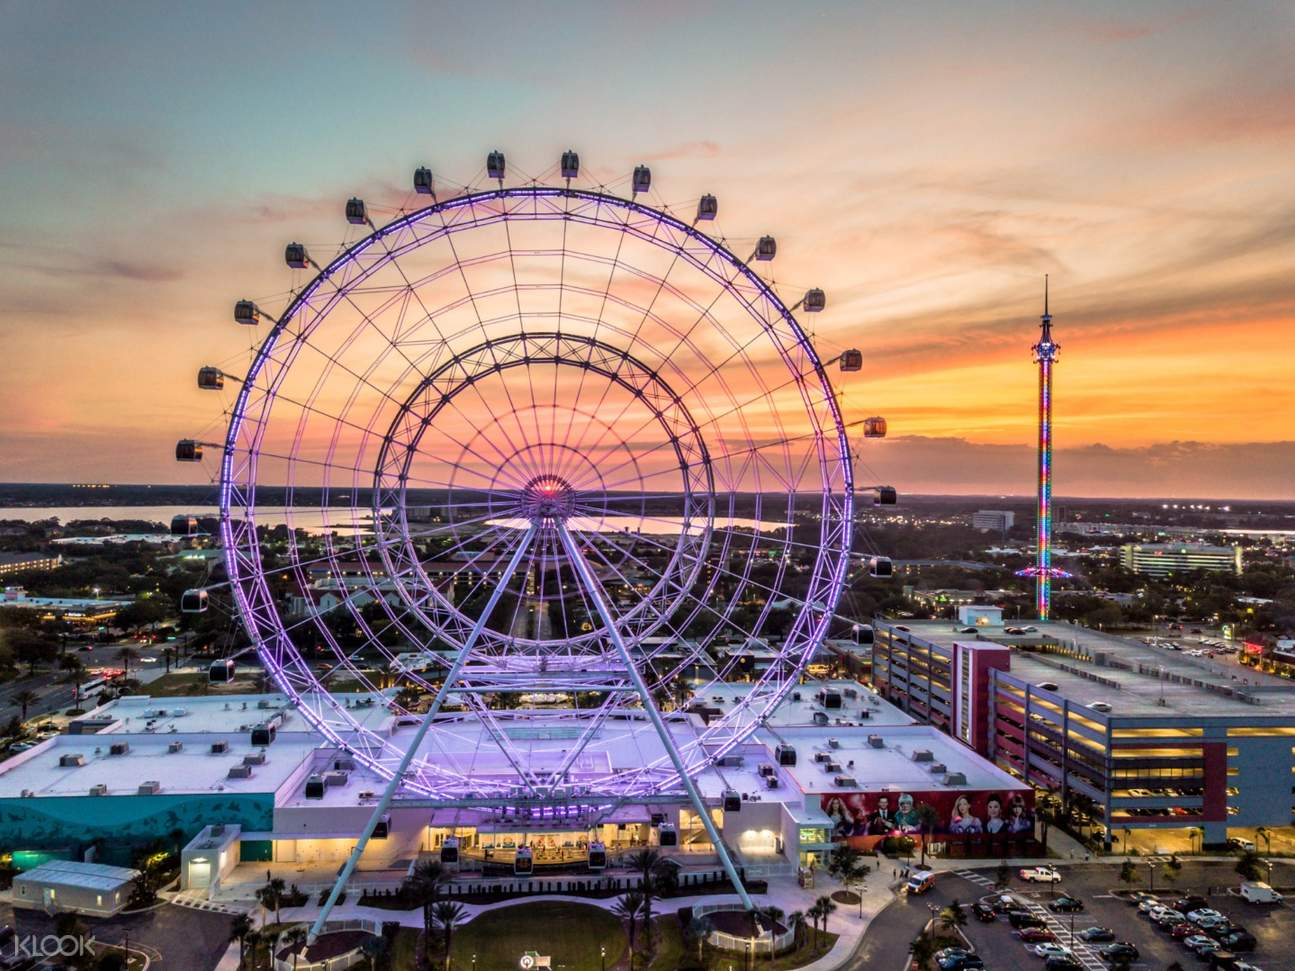 a view of The Wheel at ICON Park™